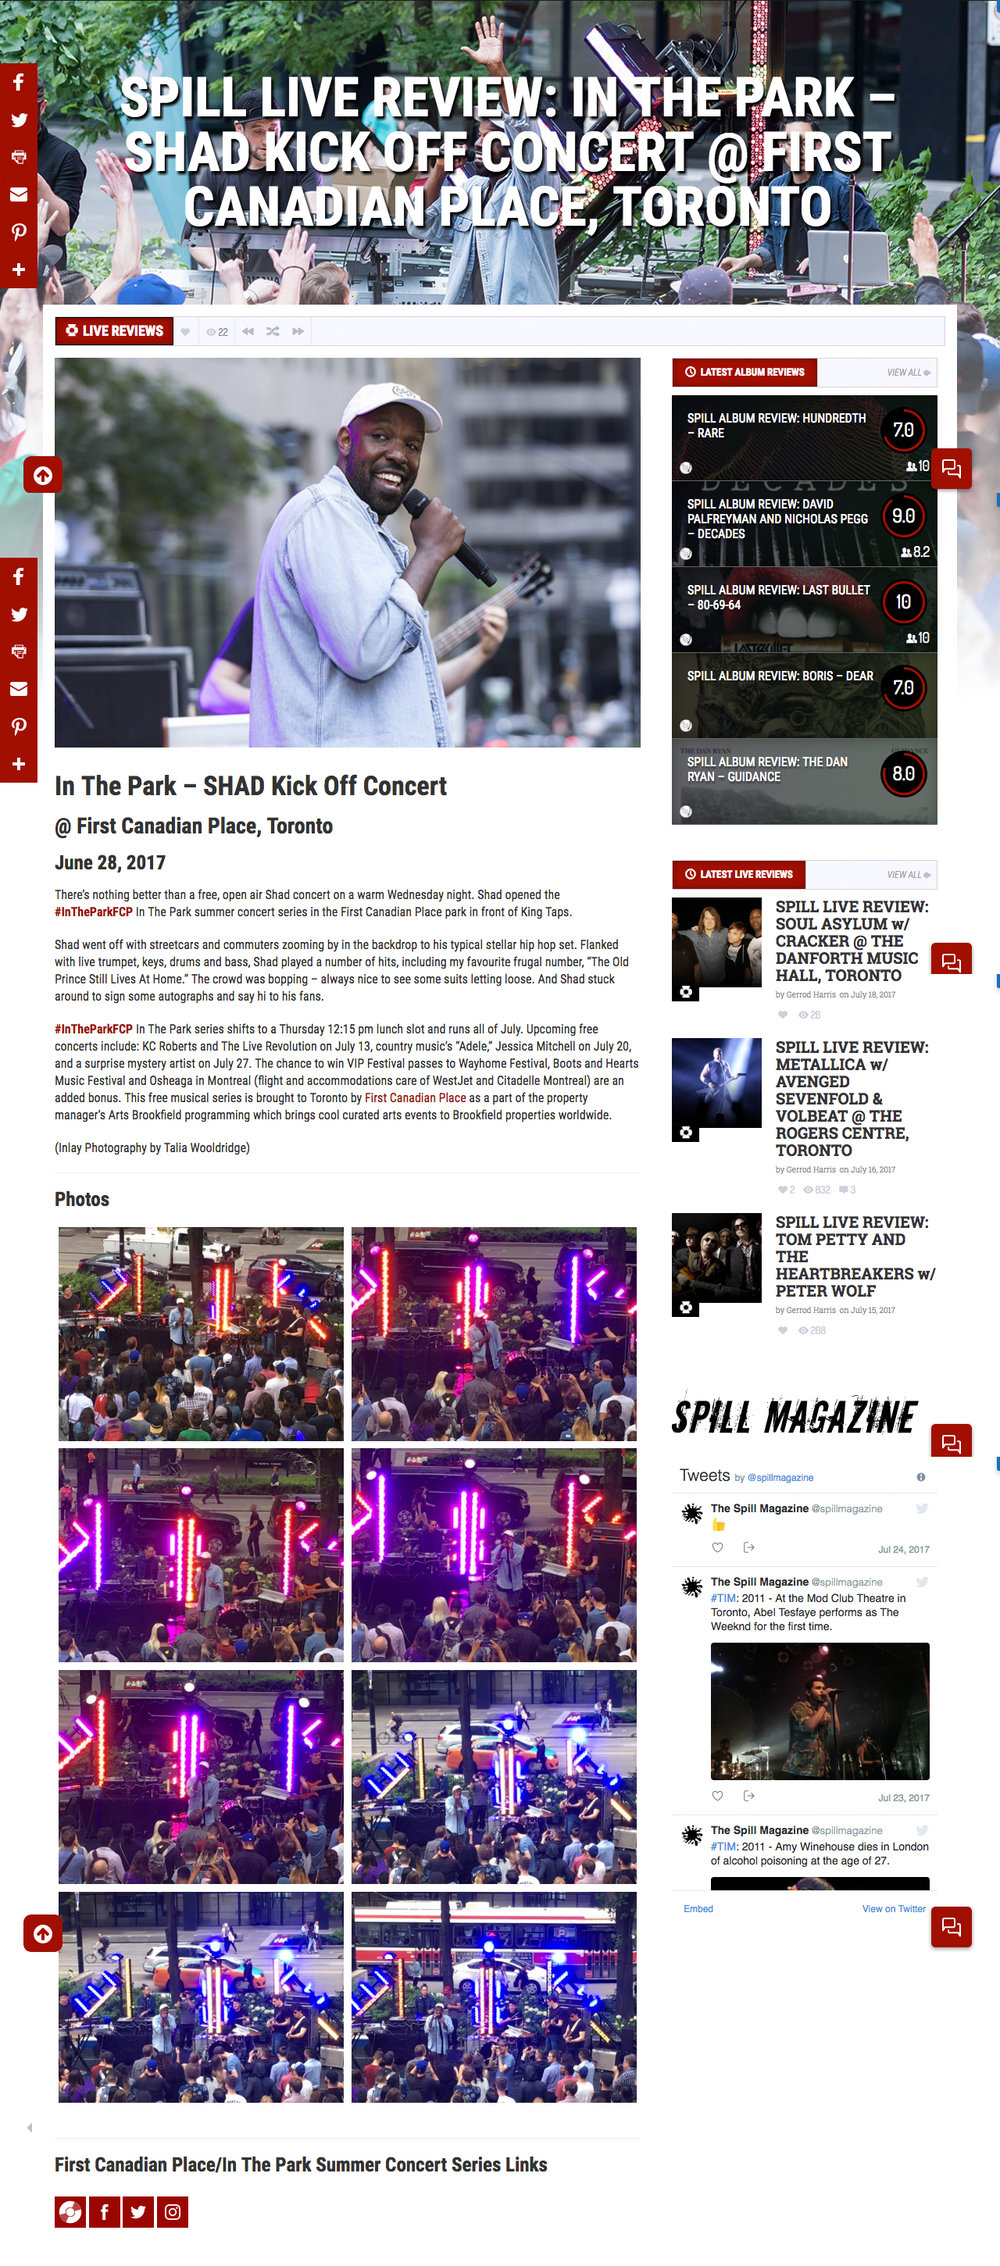 FCP featured in Spill Magazine. spillmagazine.com